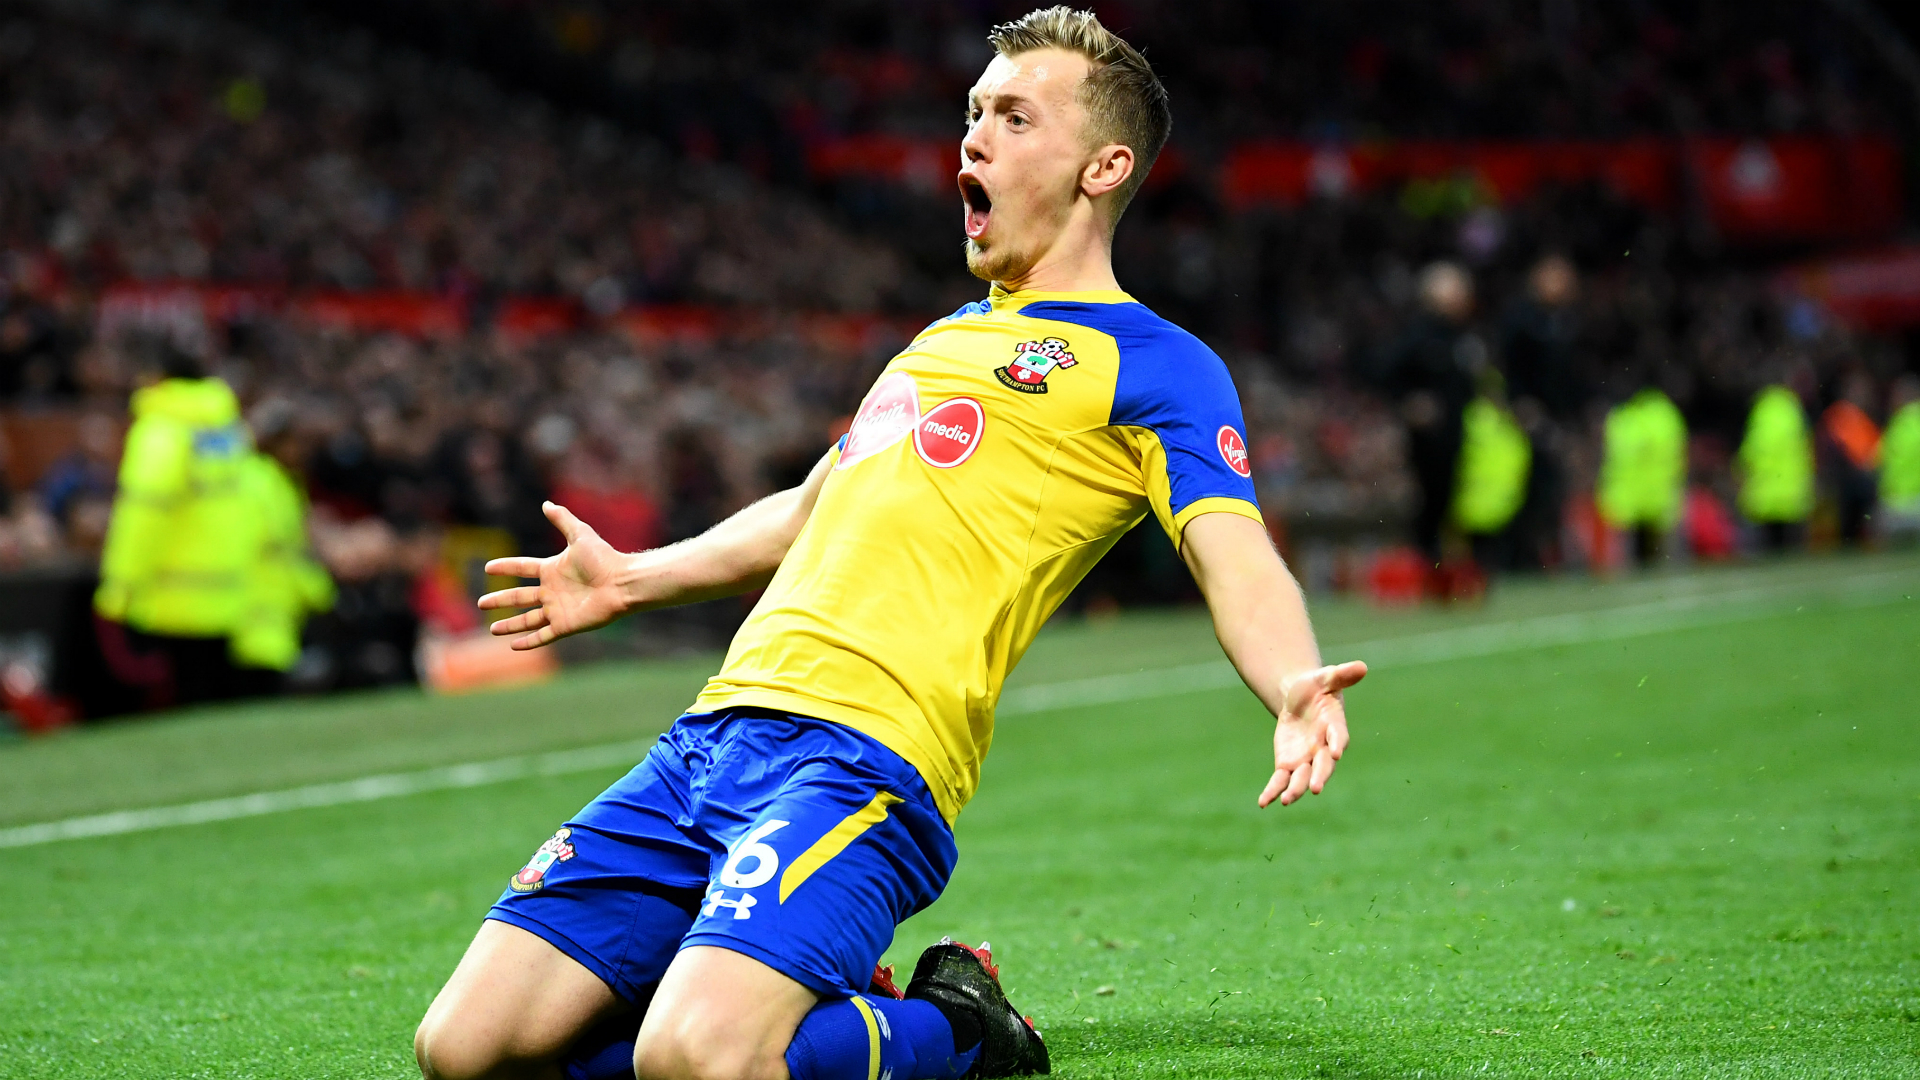 Ward-Prowse called up by England as Delph, Stones and Loftus-Cheek withdraw